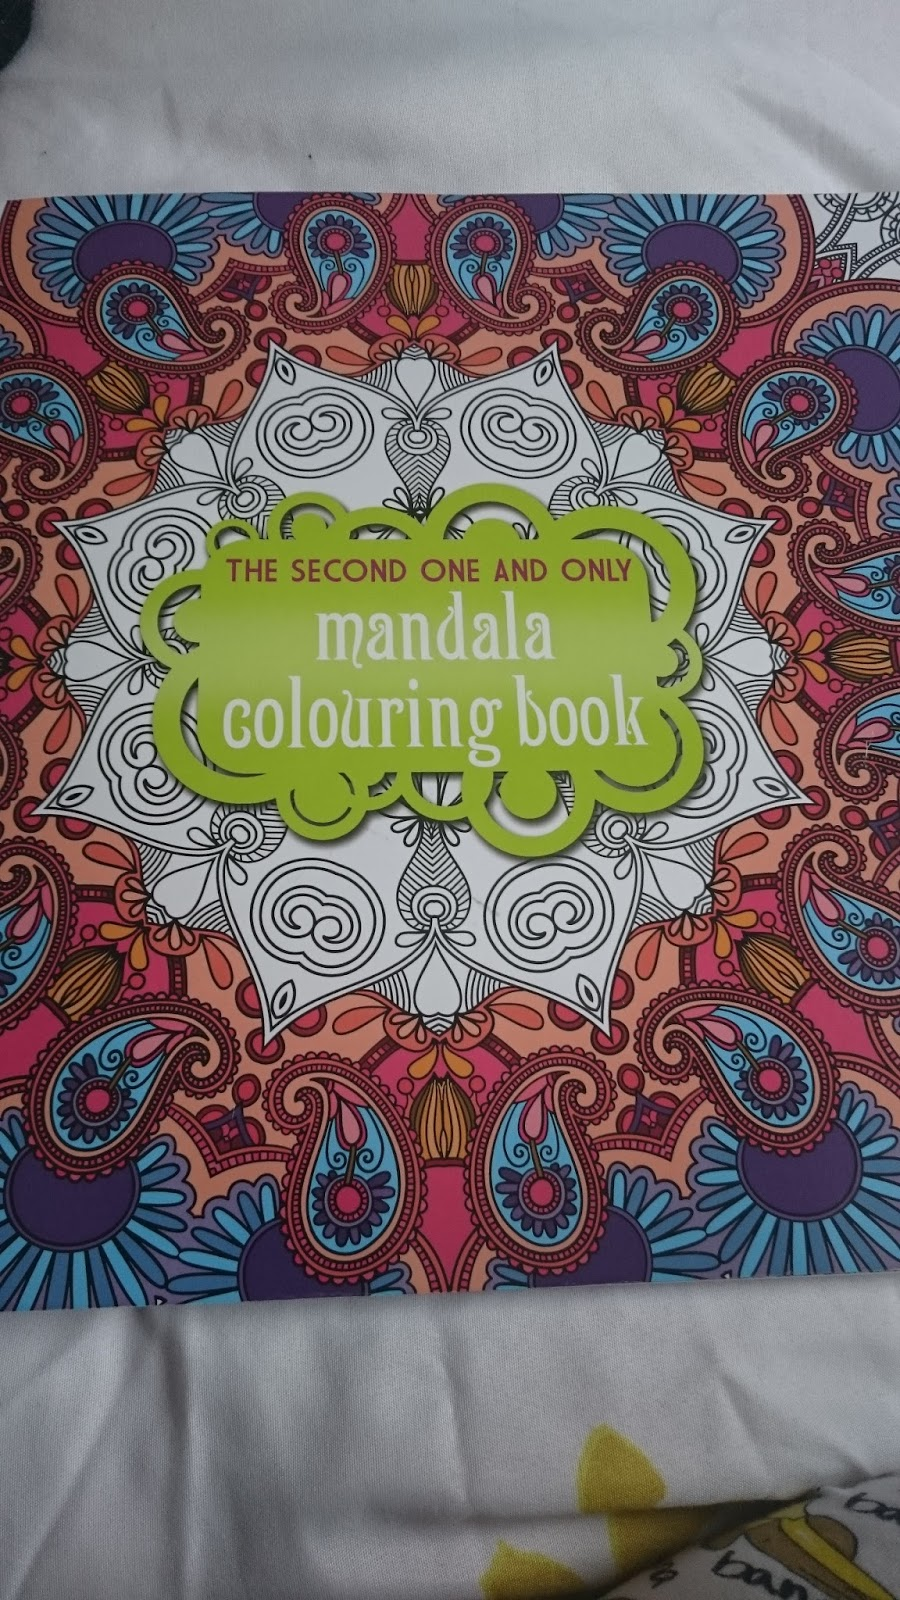 Colouring Has Been Found To Ease The Mind And It Lets Flow Freely As When You Sit Down Colour Only Things Running Through Your Head Is What